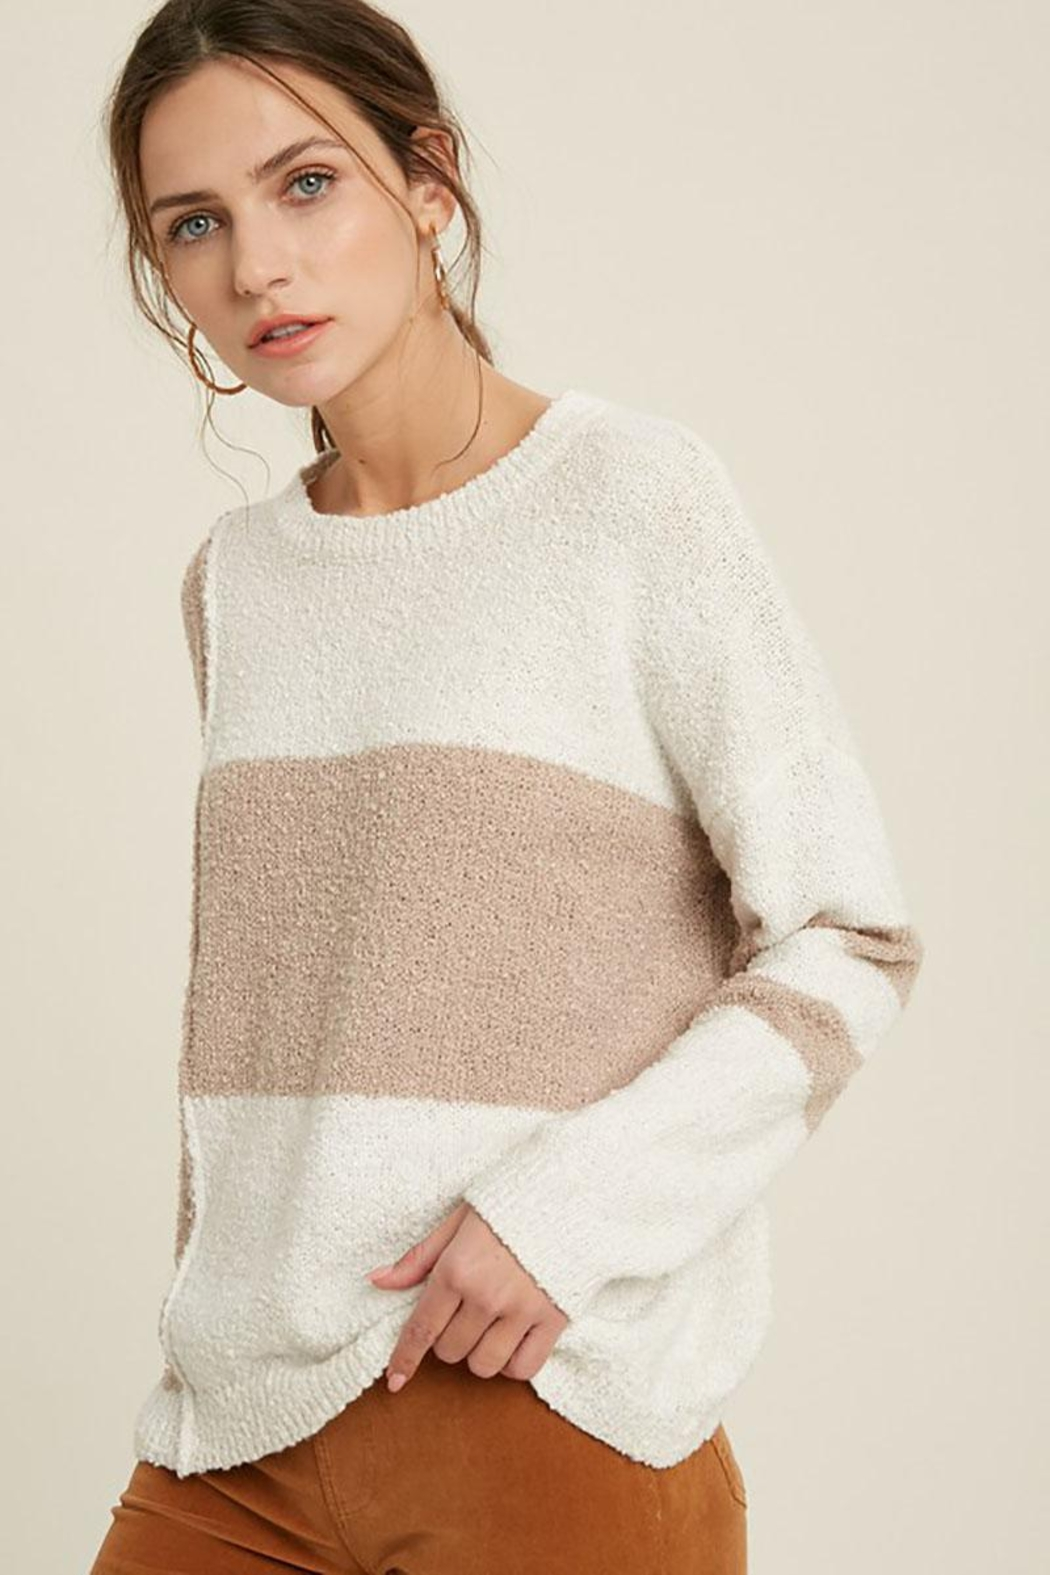 Mint Cloud Boutique Lightweight Loose Fit Oversize Colorblock Stripe Knit Pullover Sweater Top - Front Full Image